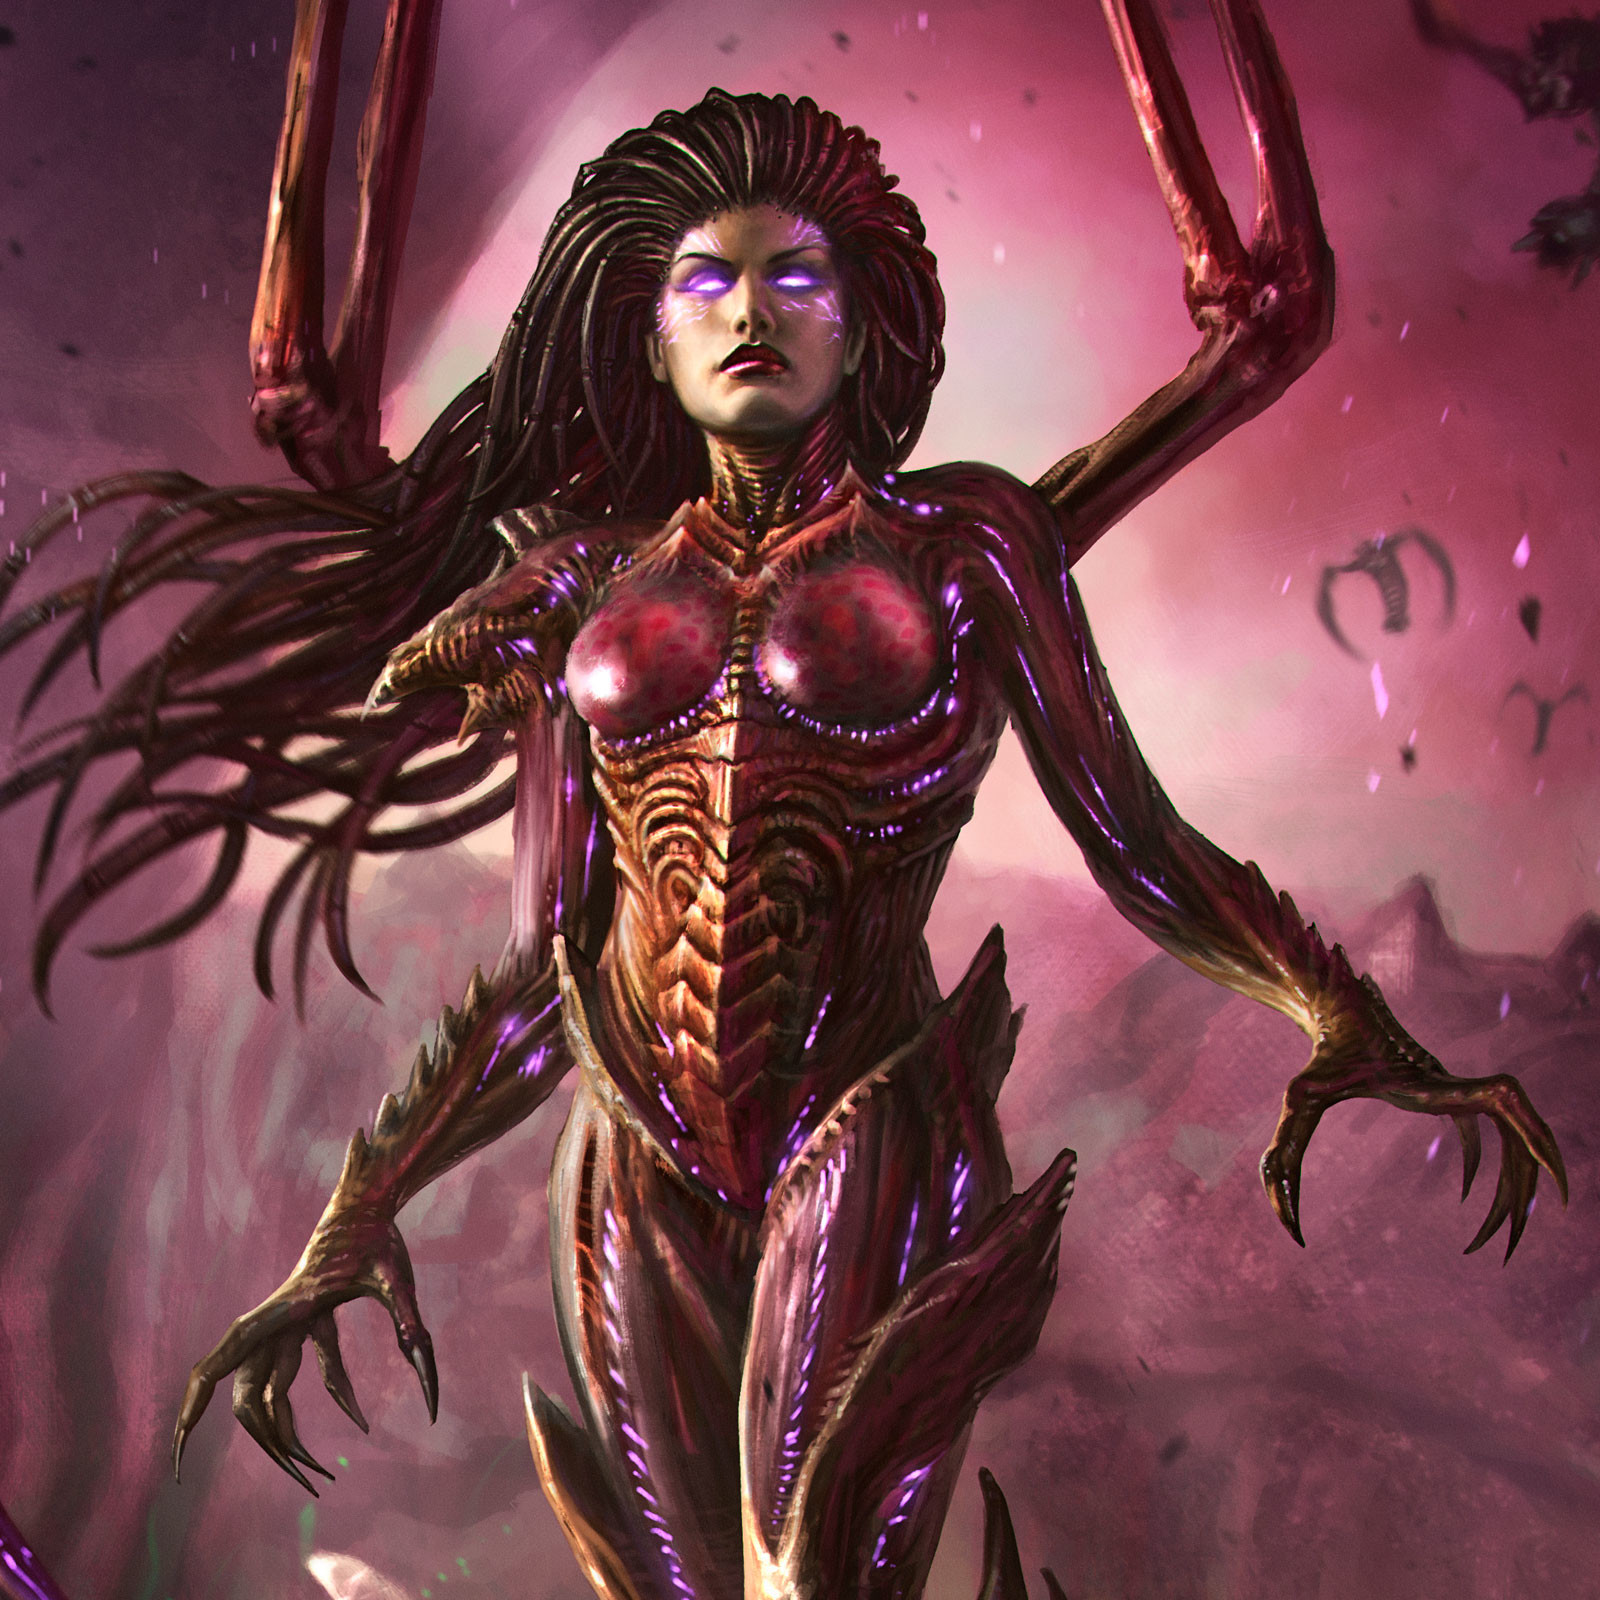 Rafael teruel kerrigan the queen of blades by rafater closeup